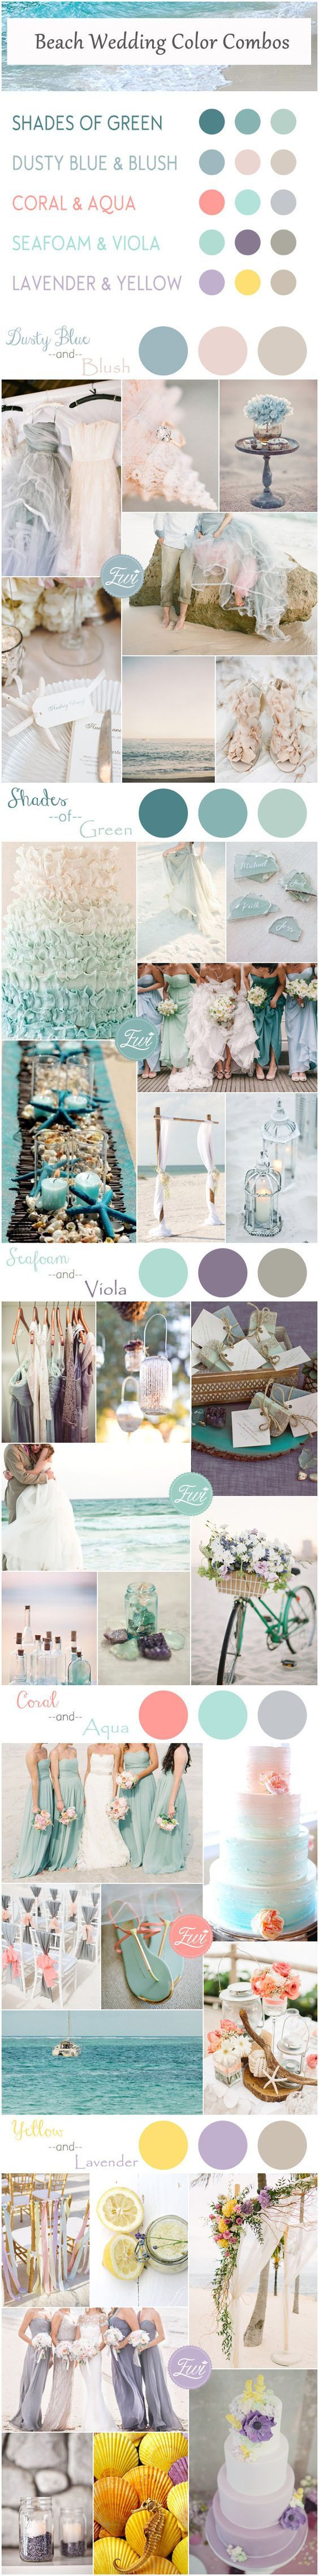 Beach Wedding Color Combos                                                                                                                                                                                 More